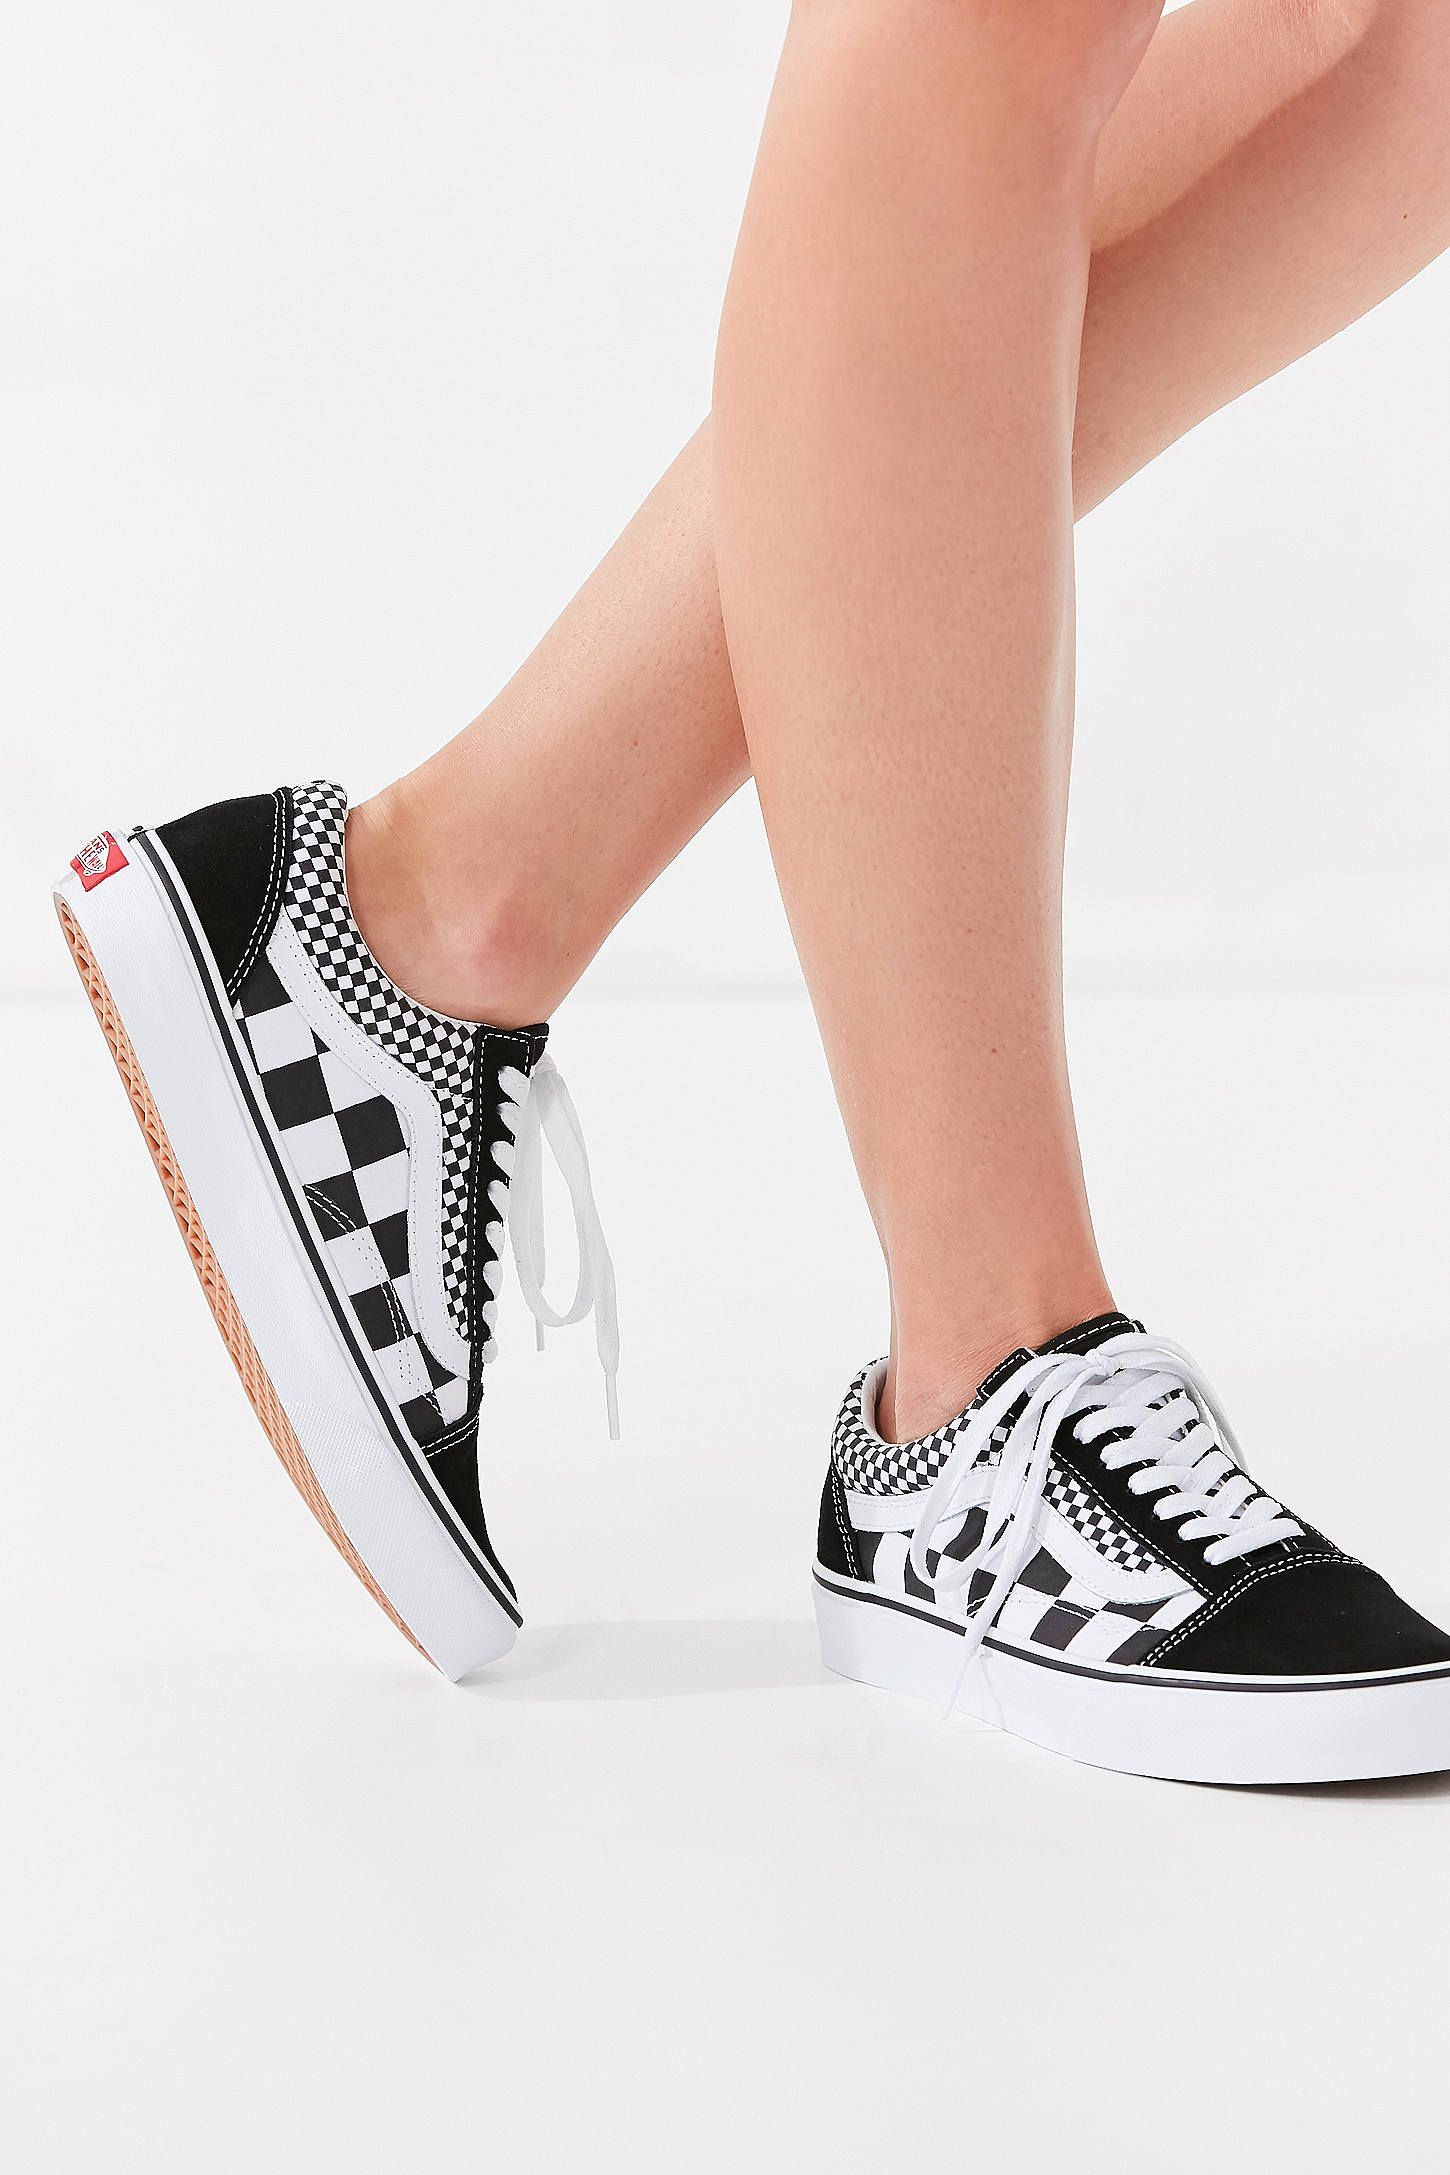 b85df719d106 Shop Vans Mix Checkerboard Old Skool Sneaker at Urban Outfitters today. We  carry all the latest styles